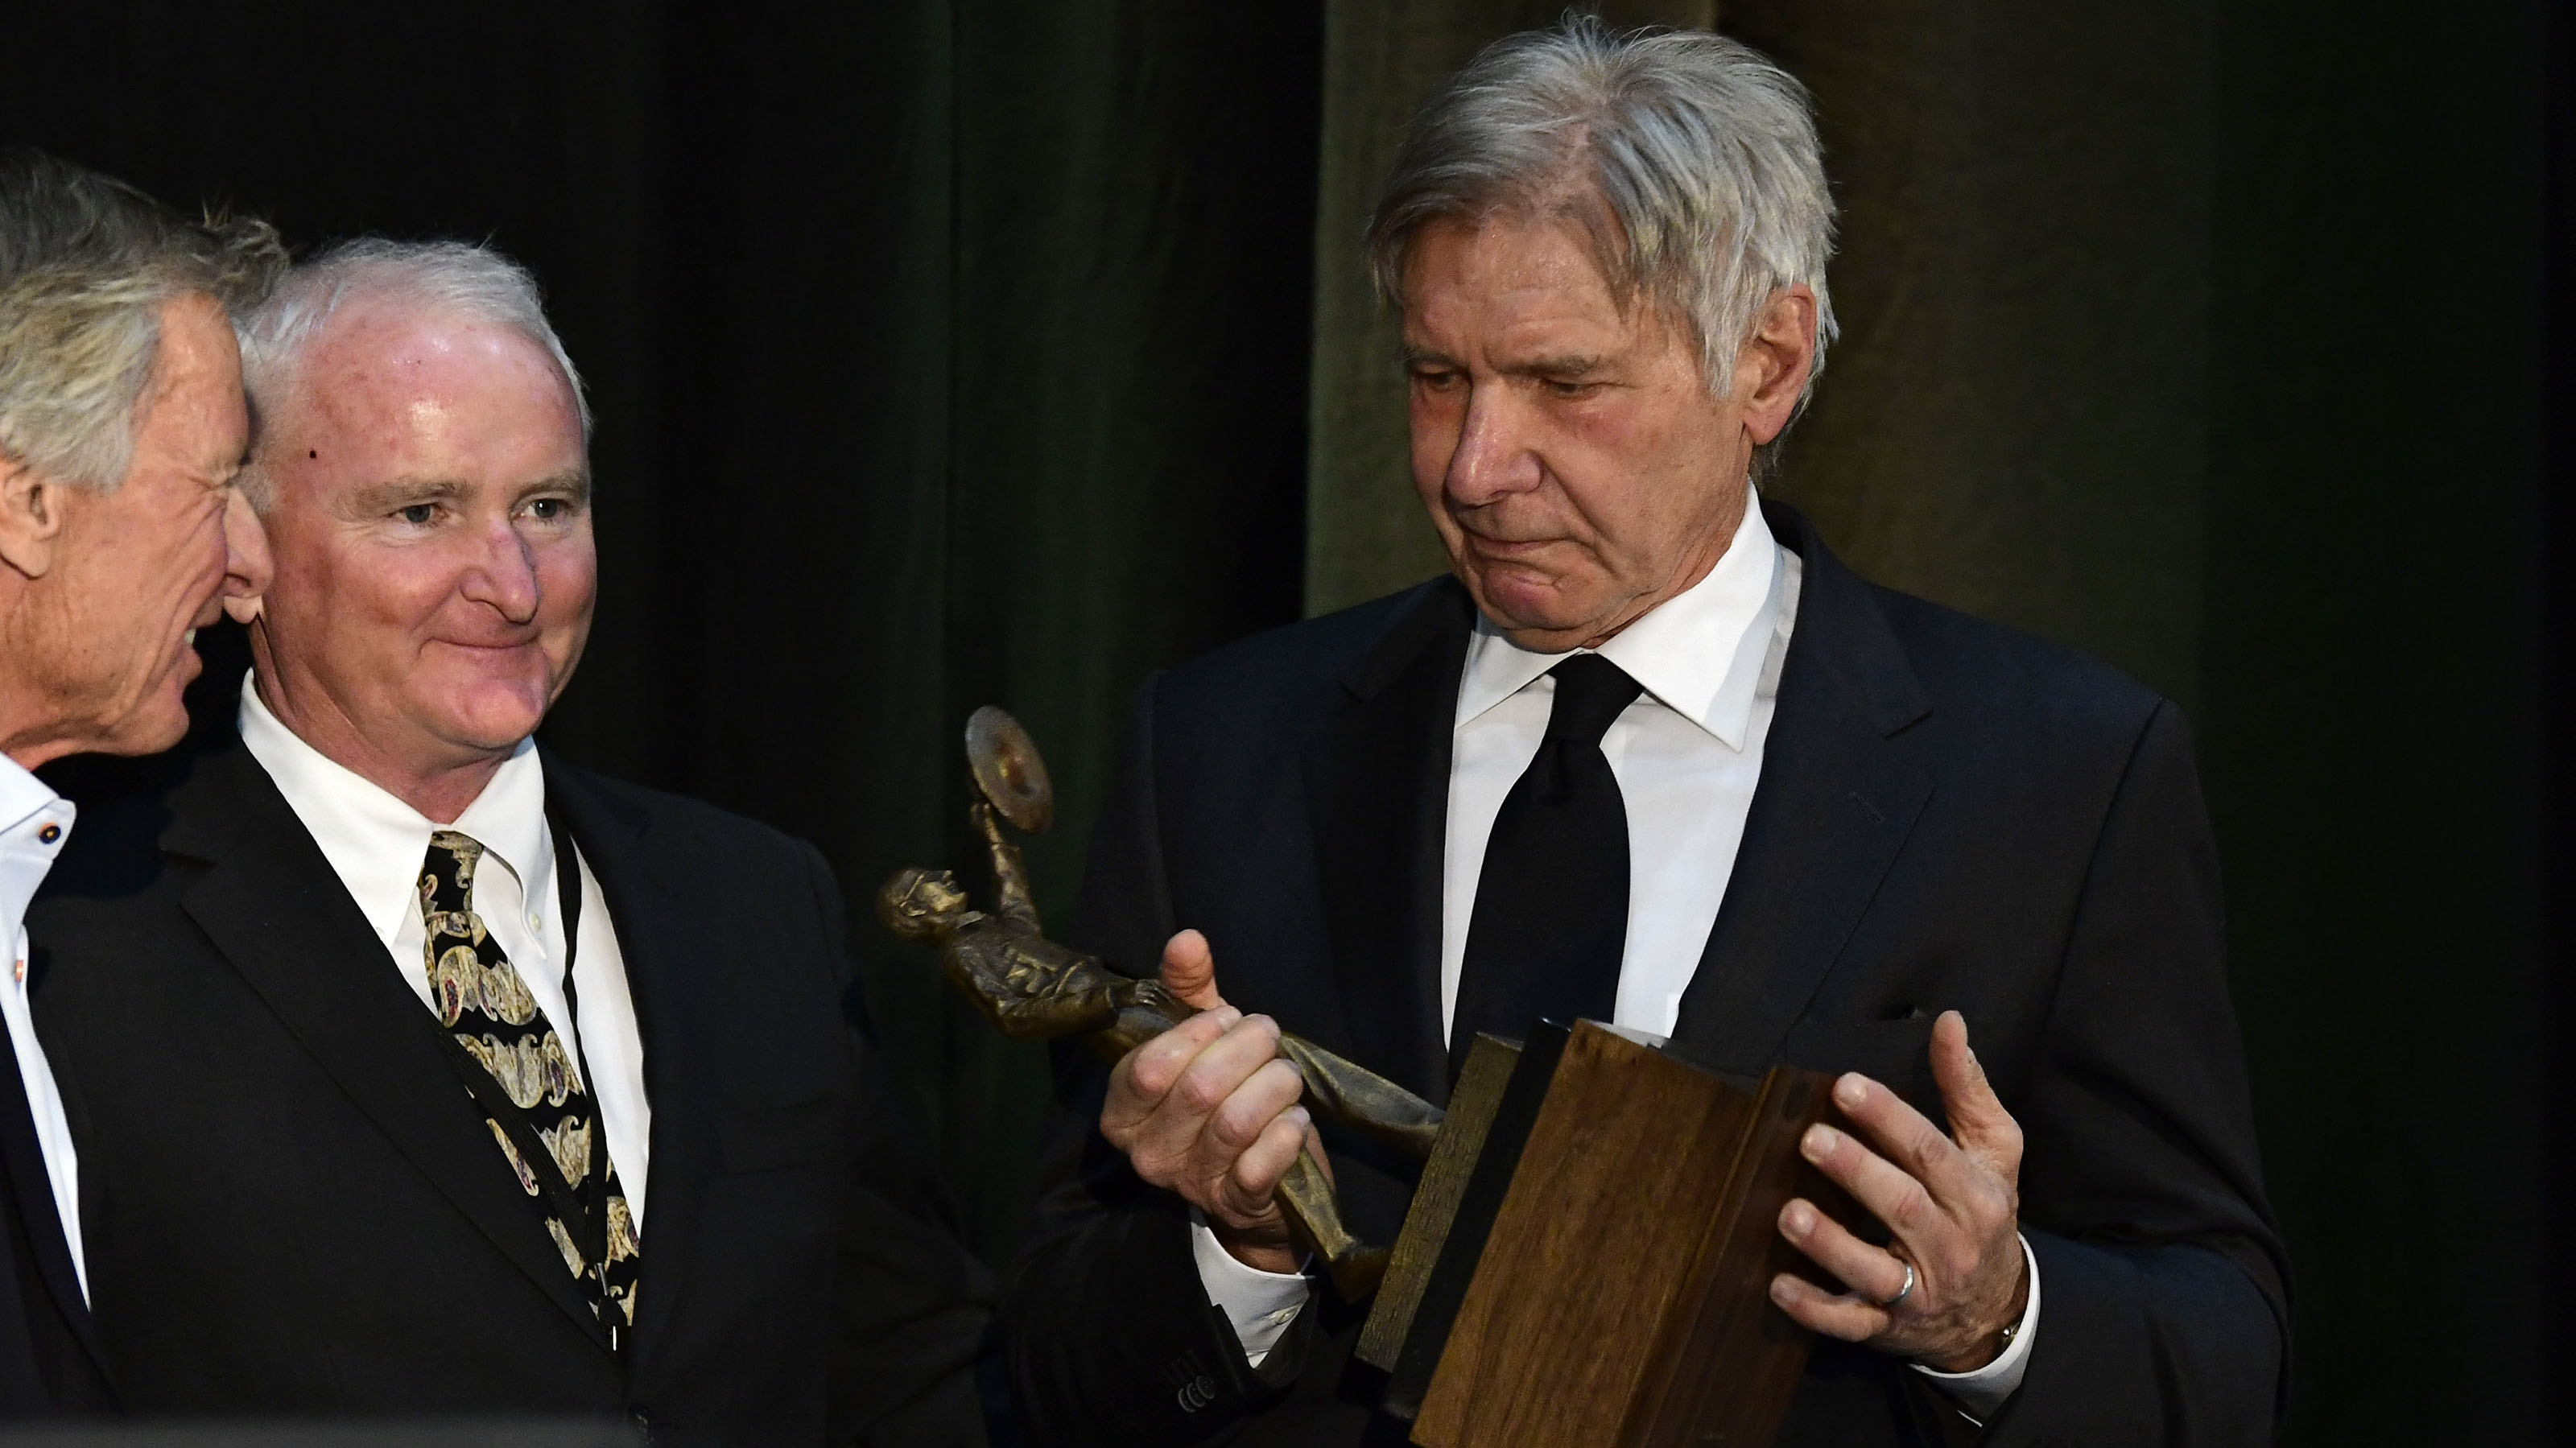 Pilot and actor Harrison Ford accepts the Hoover Trophy for general aviation greatness during the third annual R.A. 'Bob' Hoover Trophy reception presented by AOPA in Washington, D.C., March 21, 2018. Photo by David Tulis.